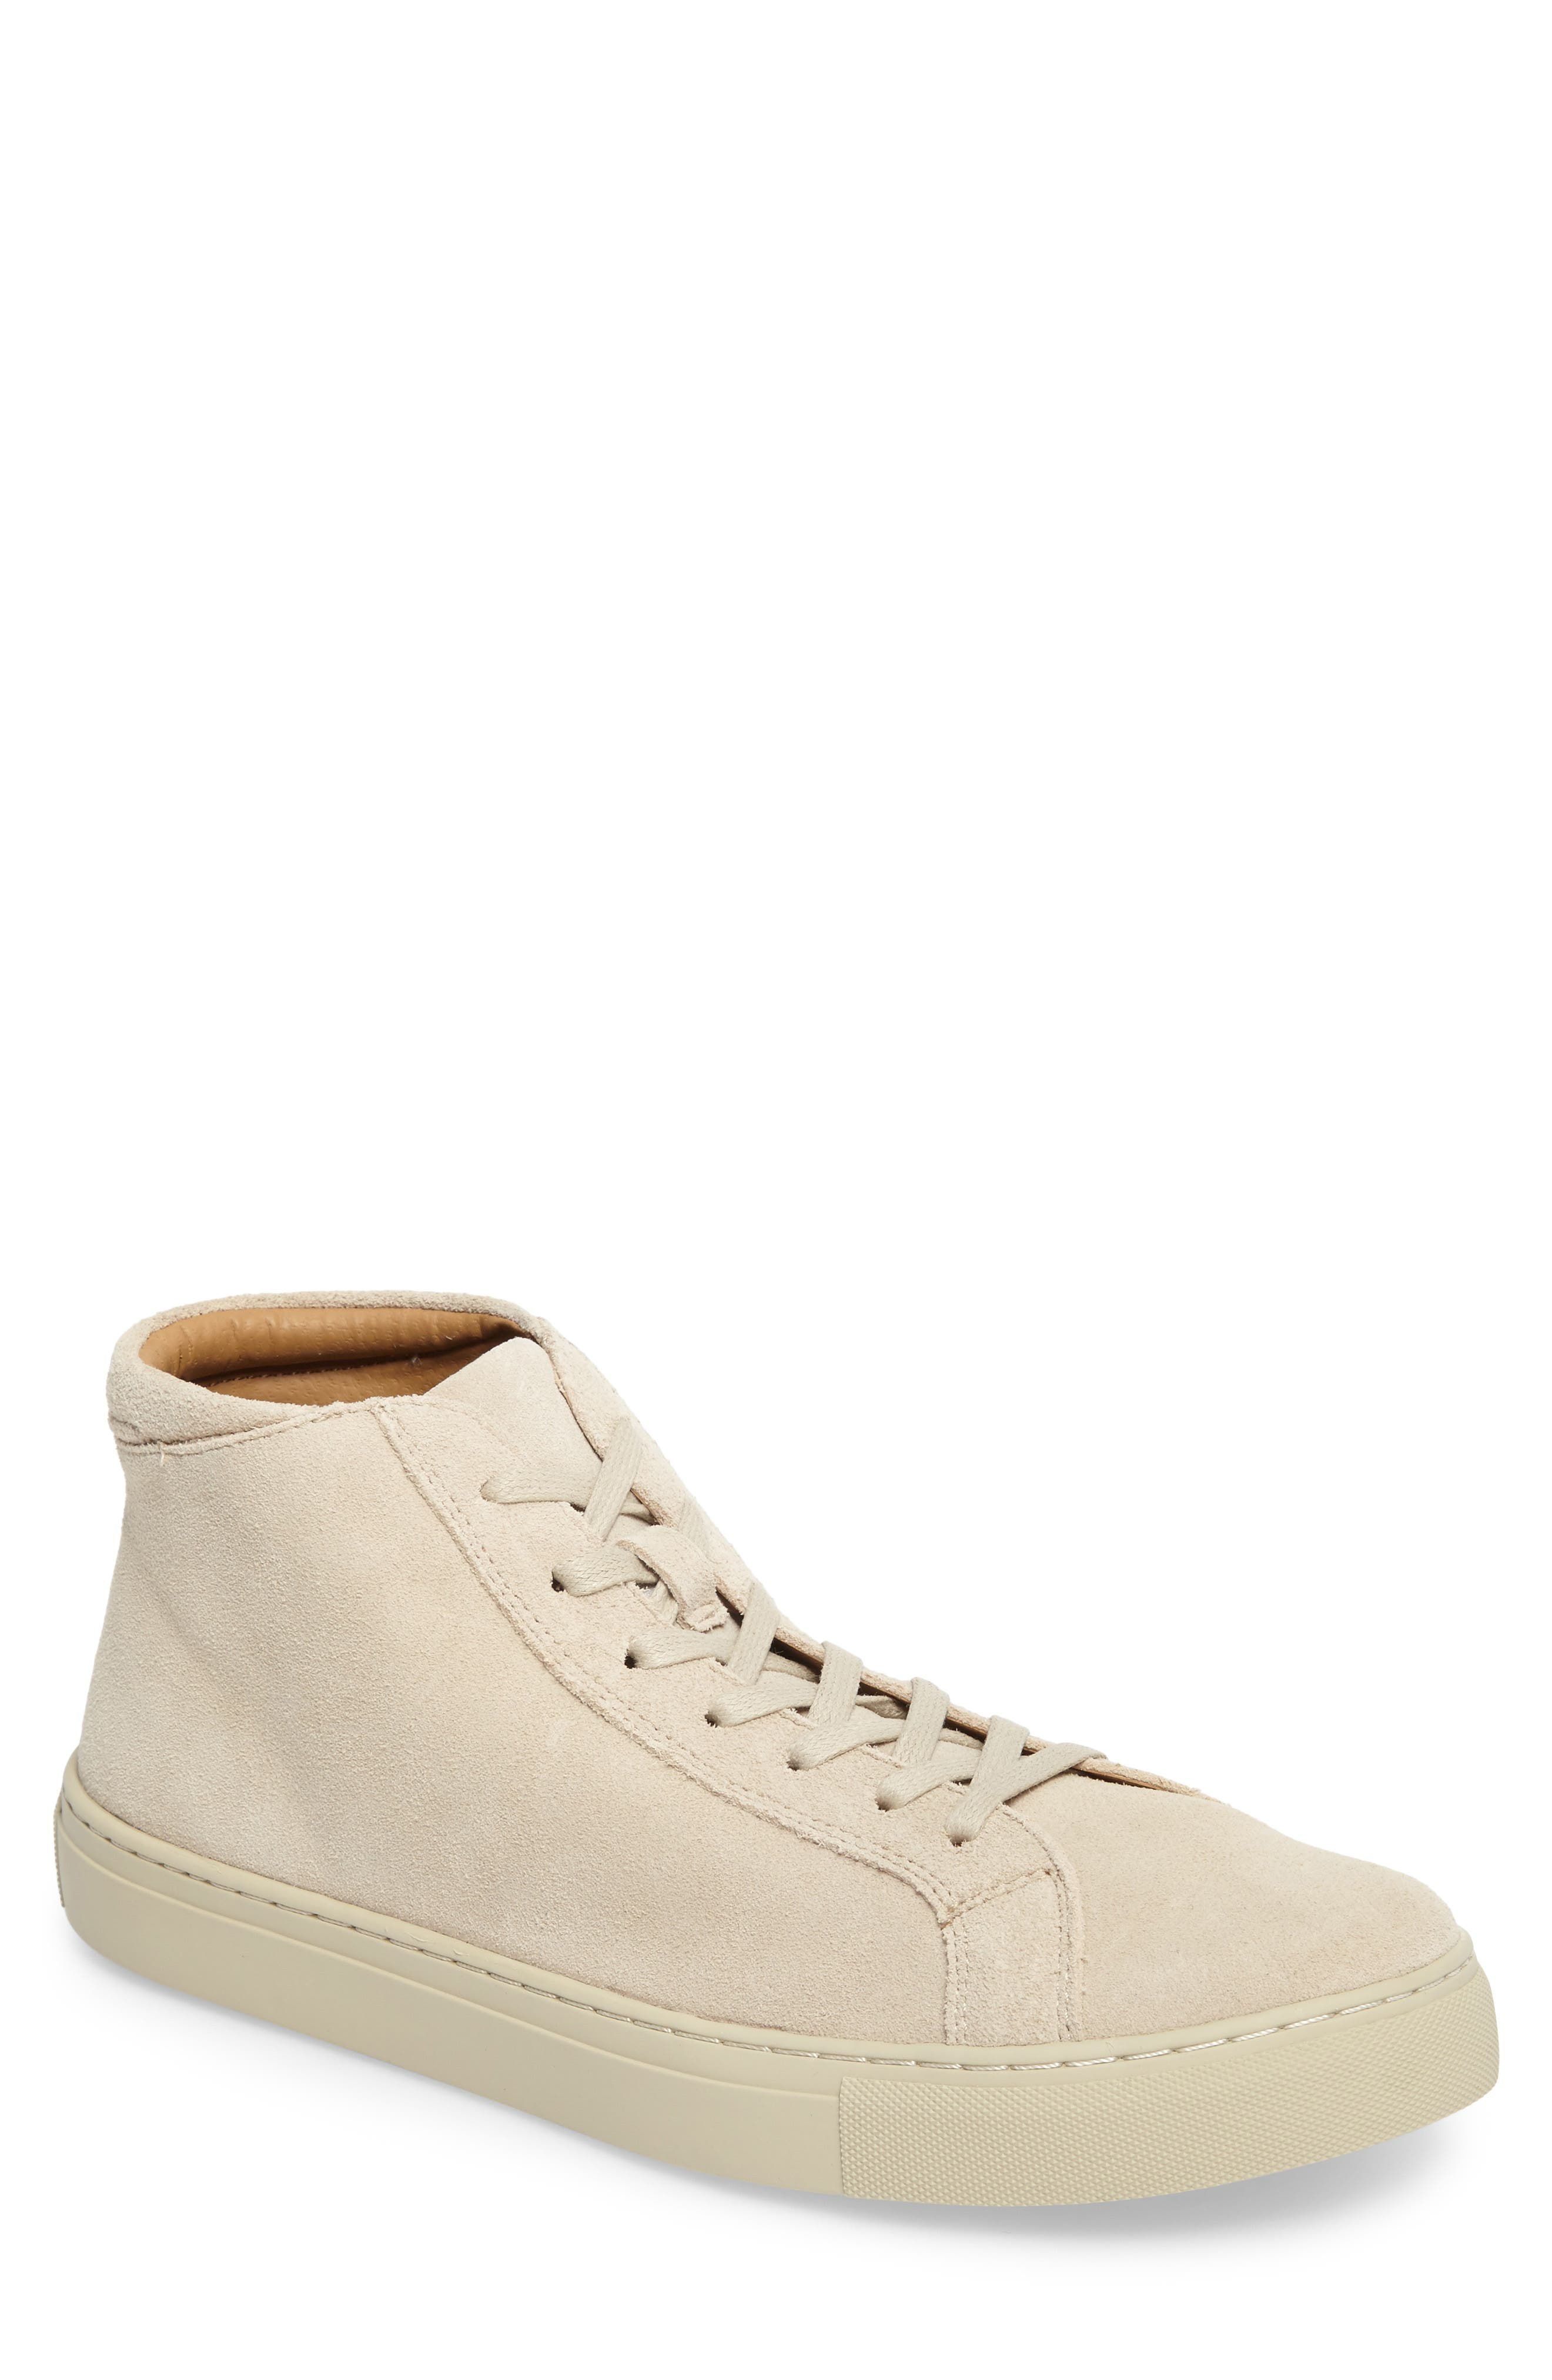 Kenneth Cole Reaction Mid Sneaker (Men)